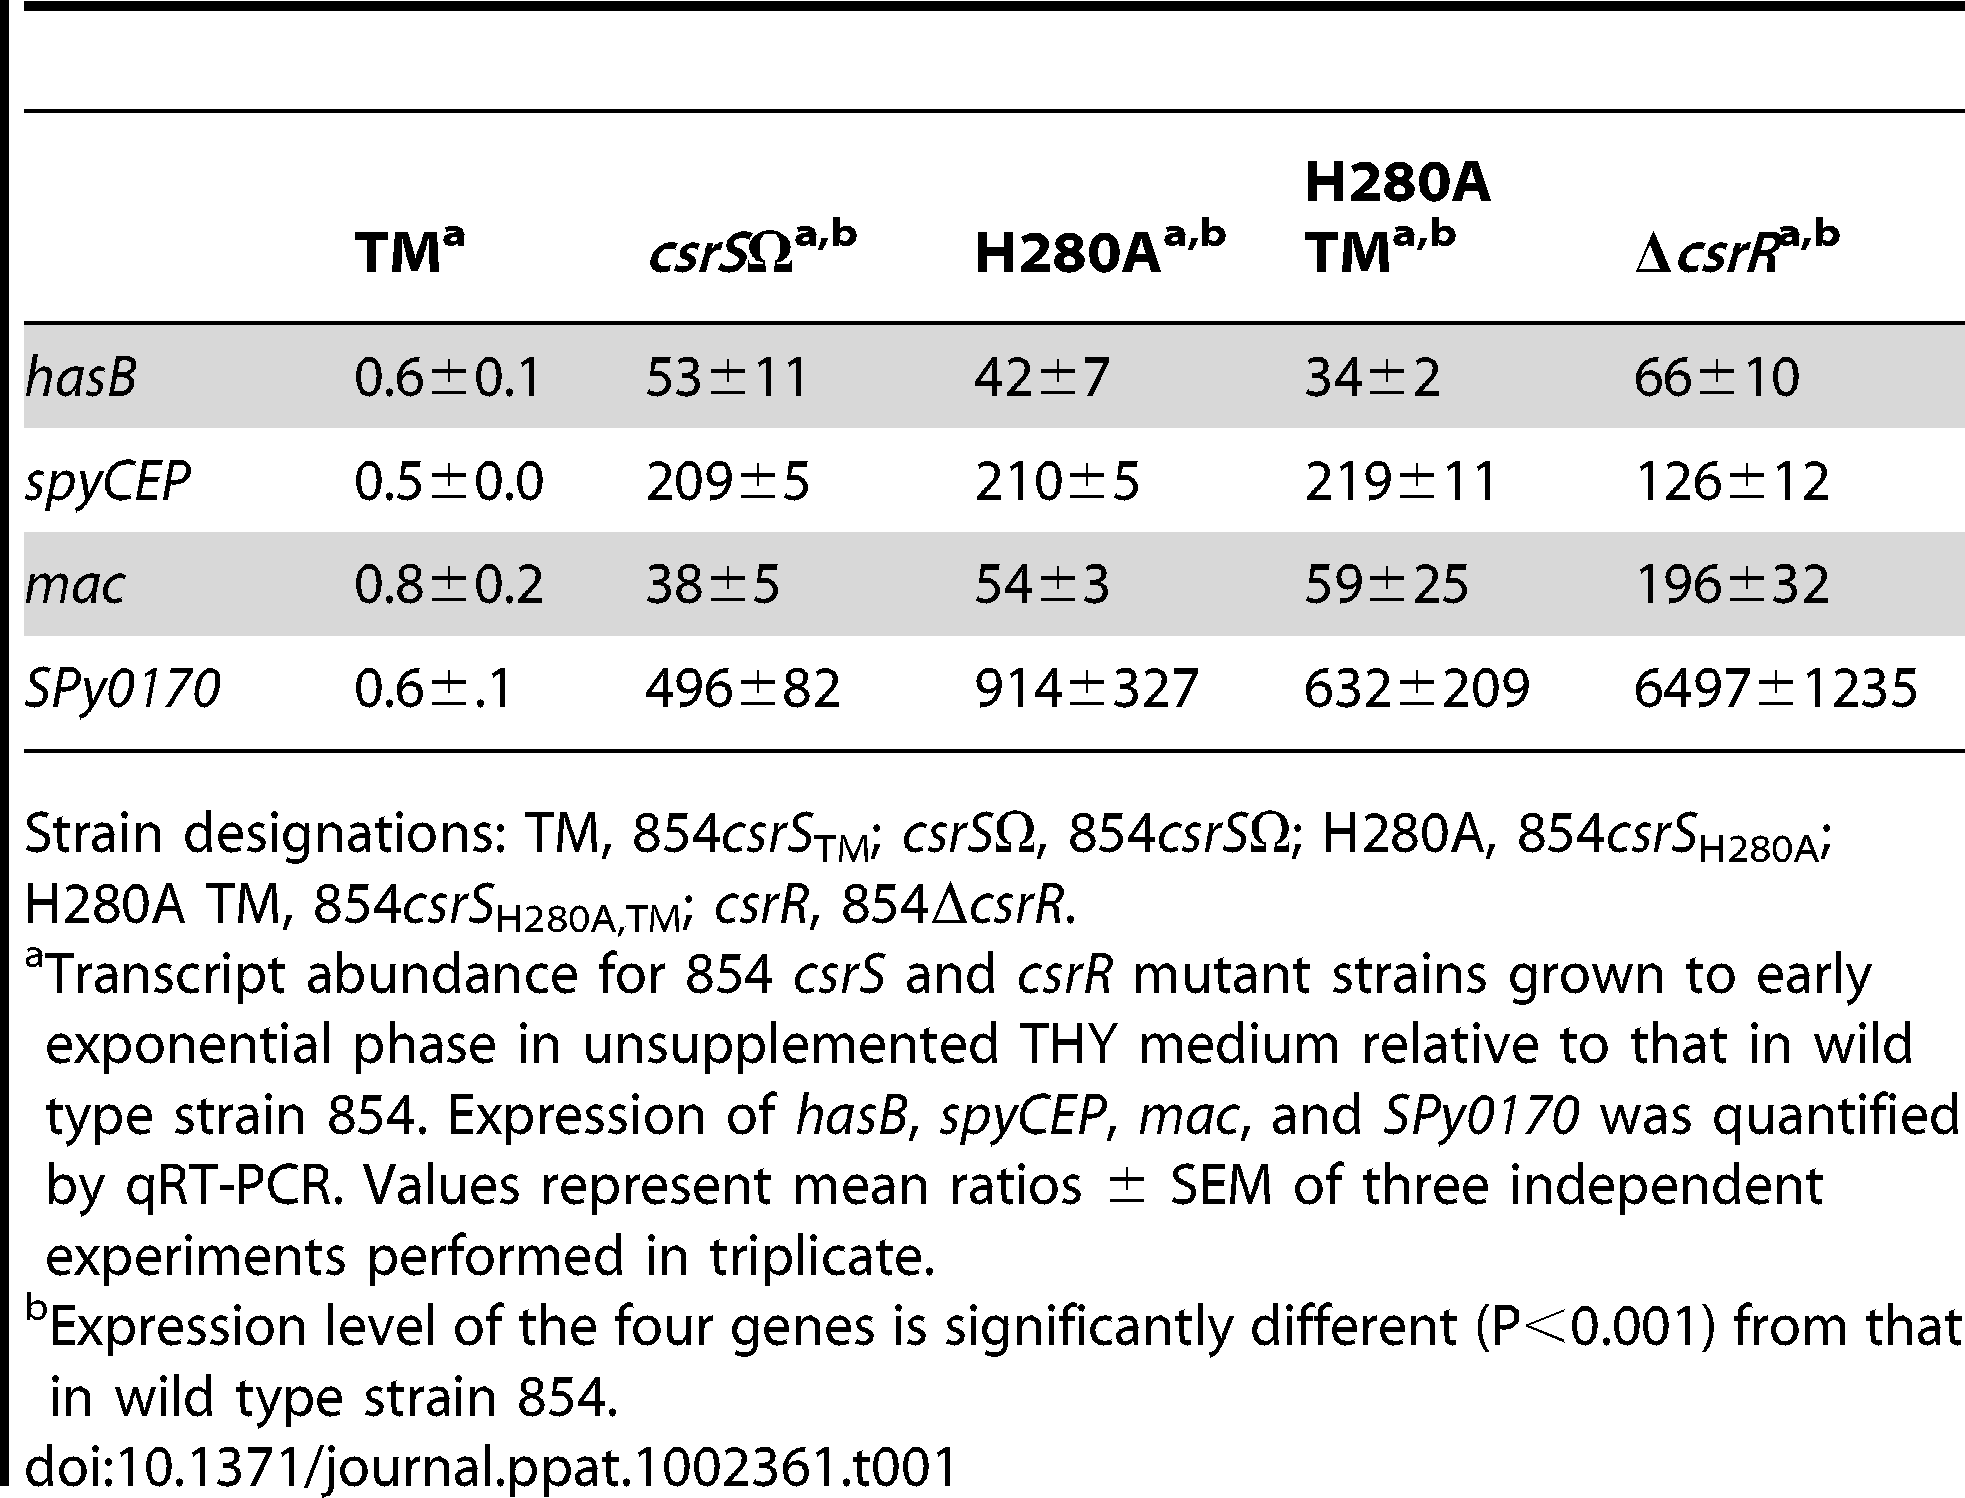 Effect of <i>csrS</i> and <i>csrR</i> mutations on expression of CsrRS-regulated genes in GAS strain 854 under standard growth conditions.